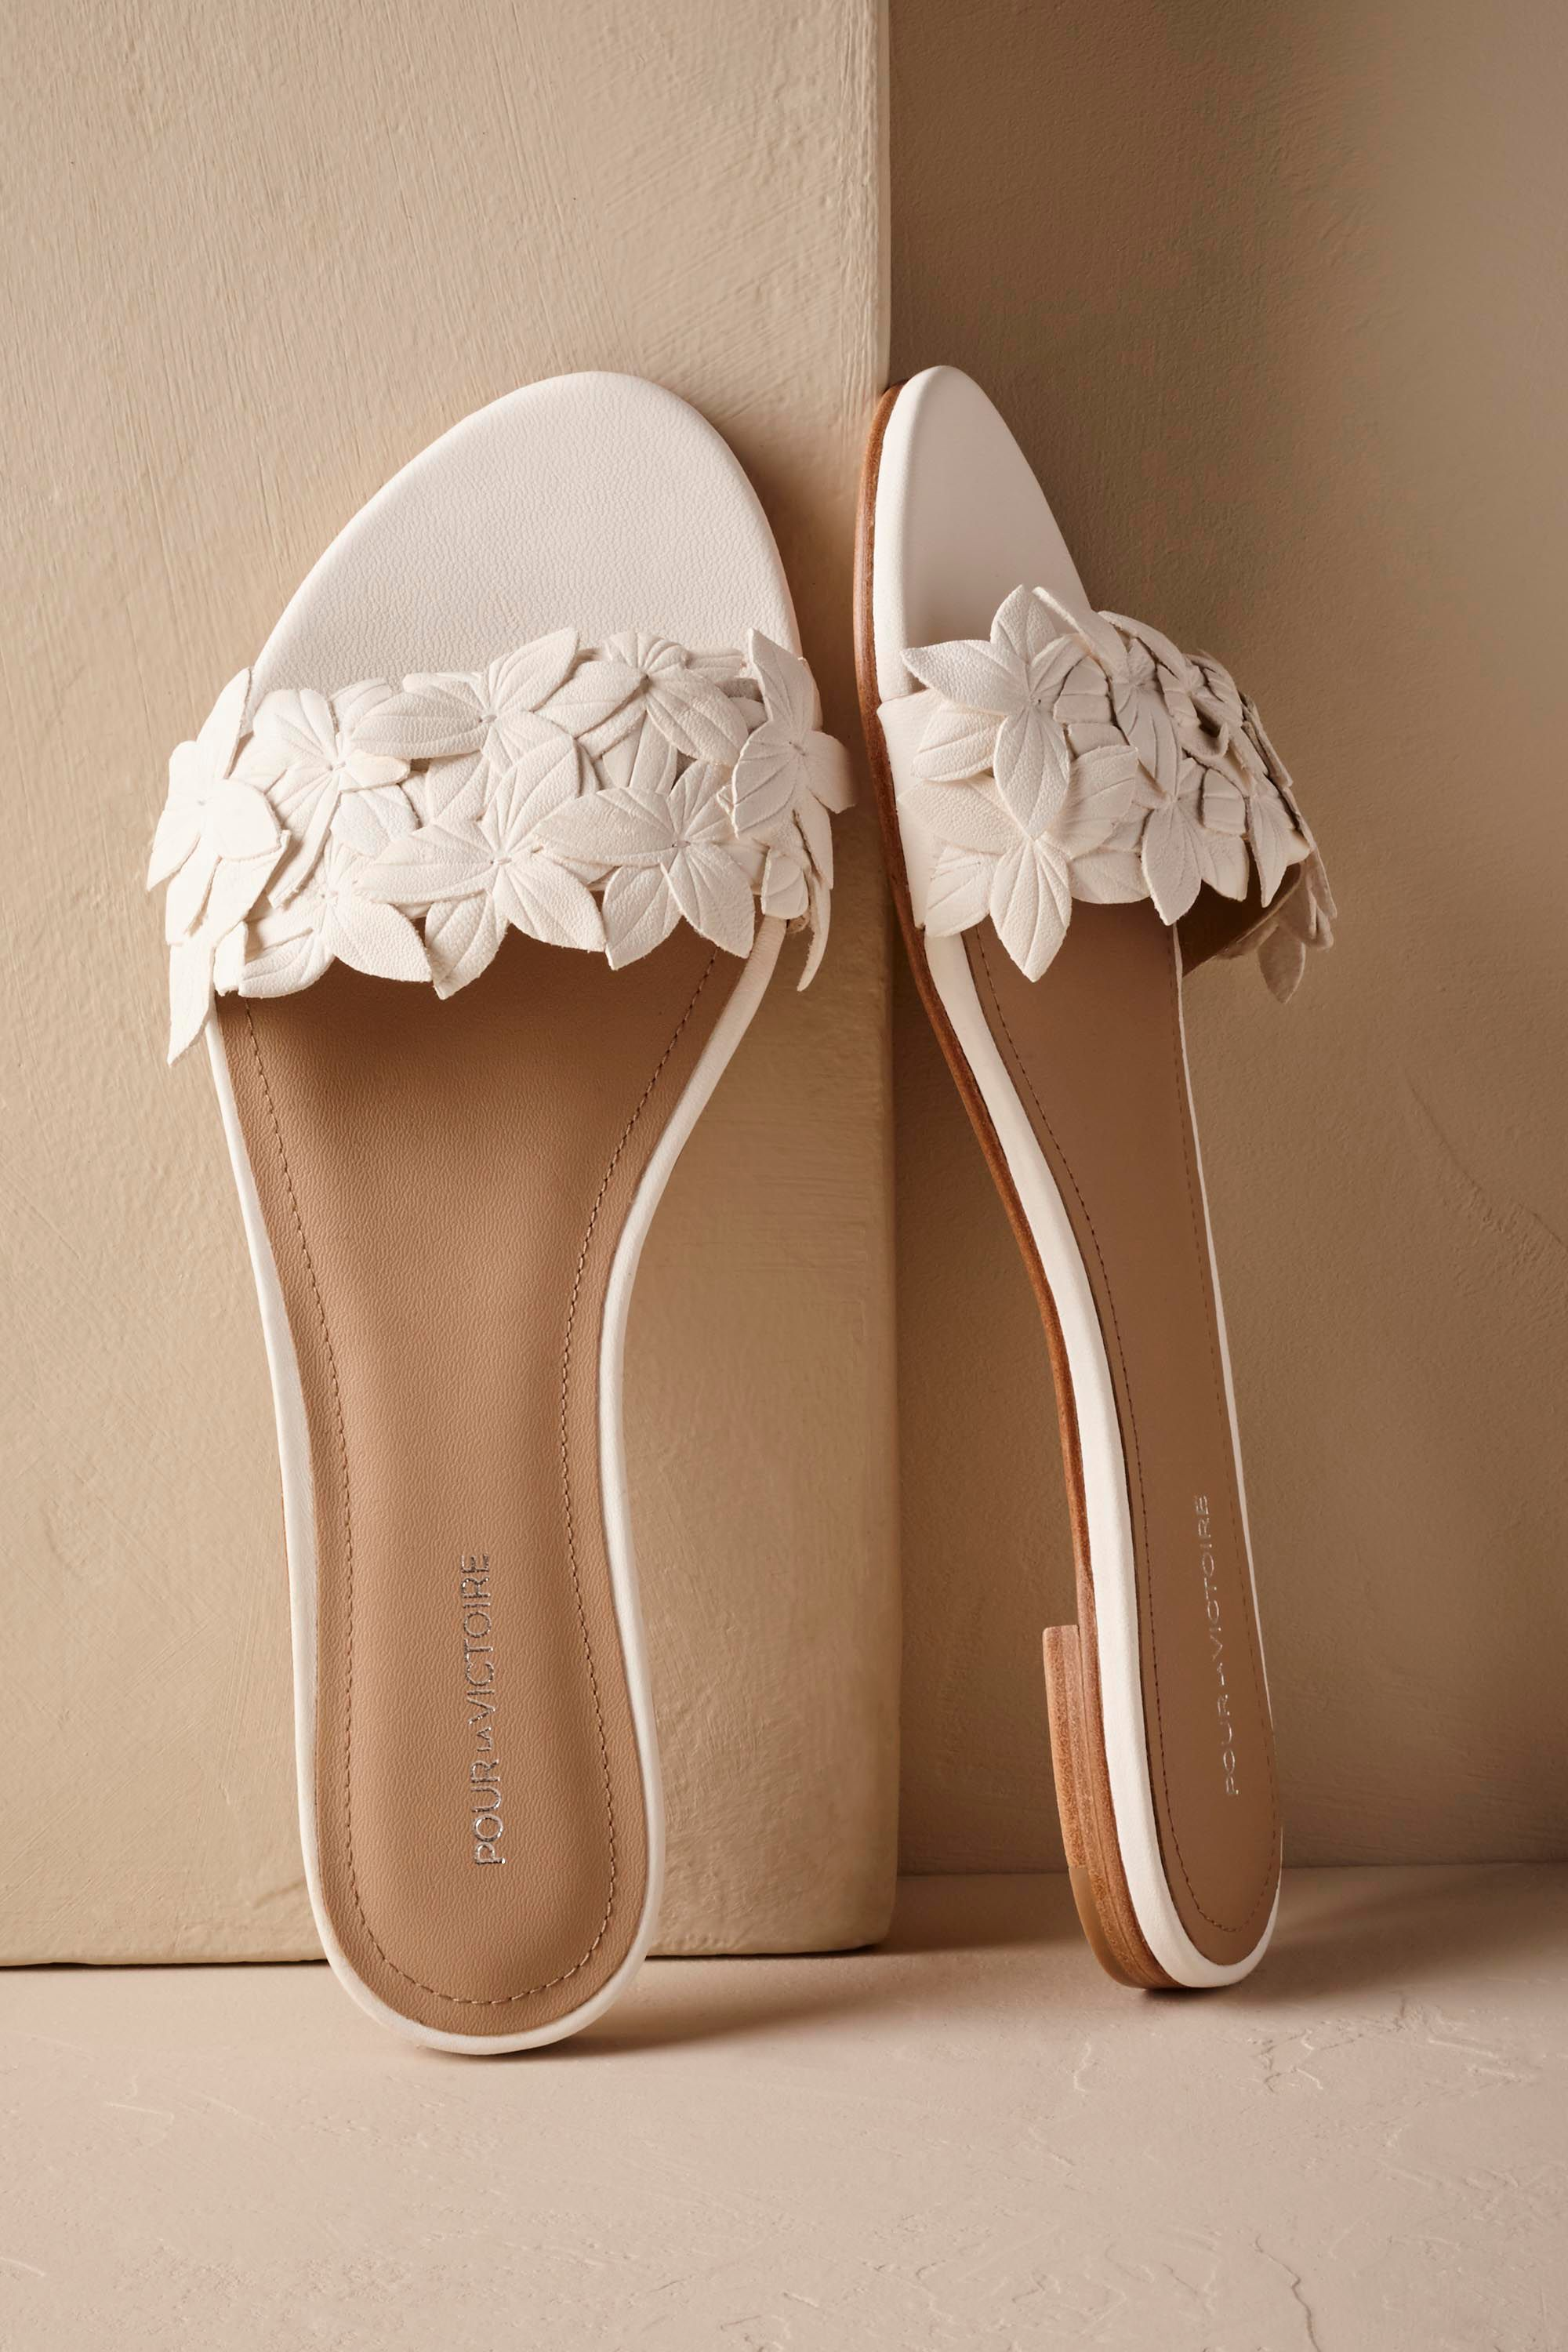 shoes sandals wedding sandals Dani Sandals